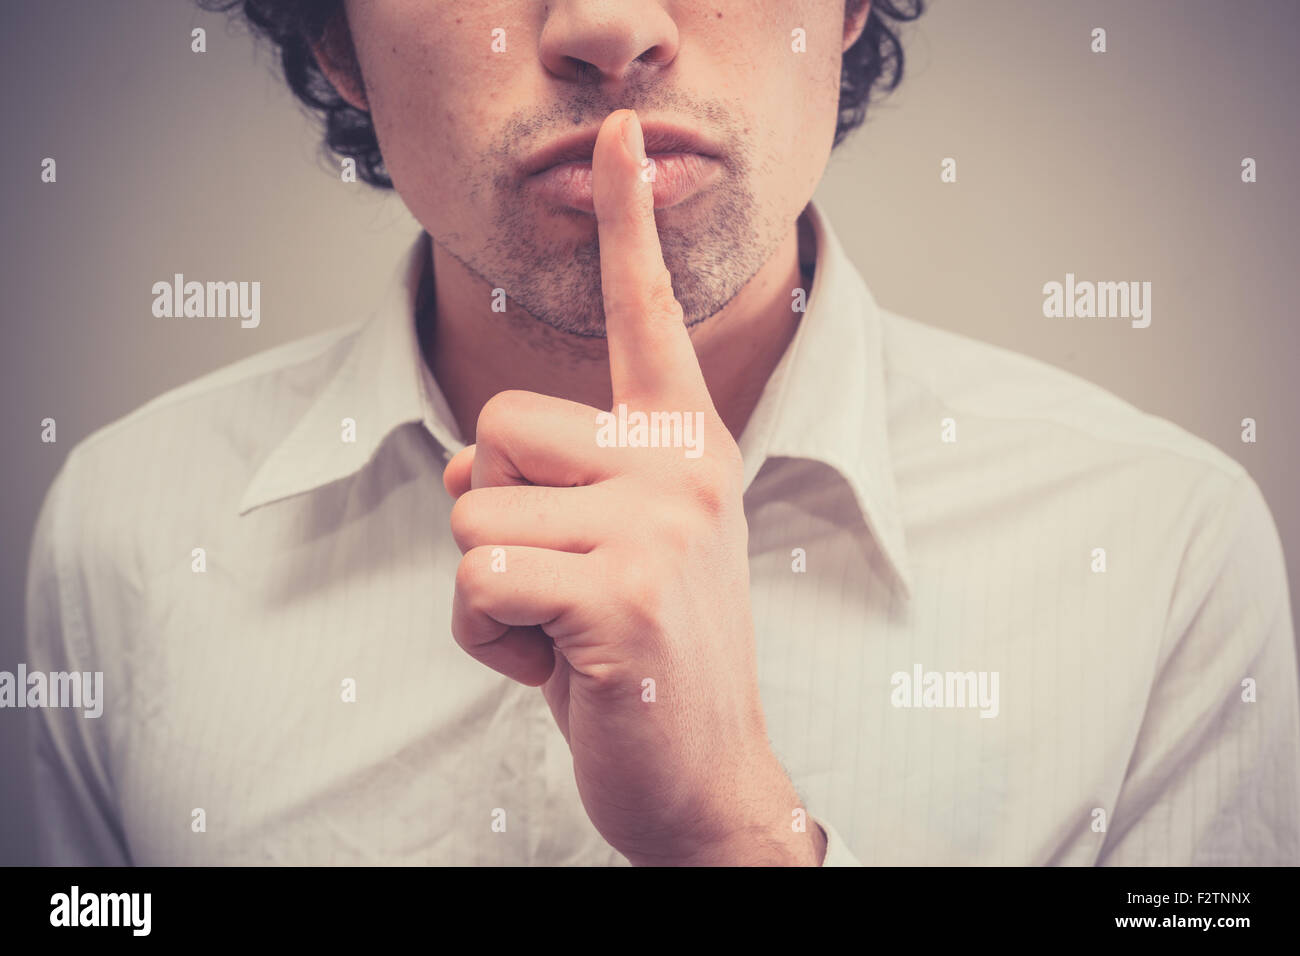 Young man with finger on lips is gesturing hush - Stock Image